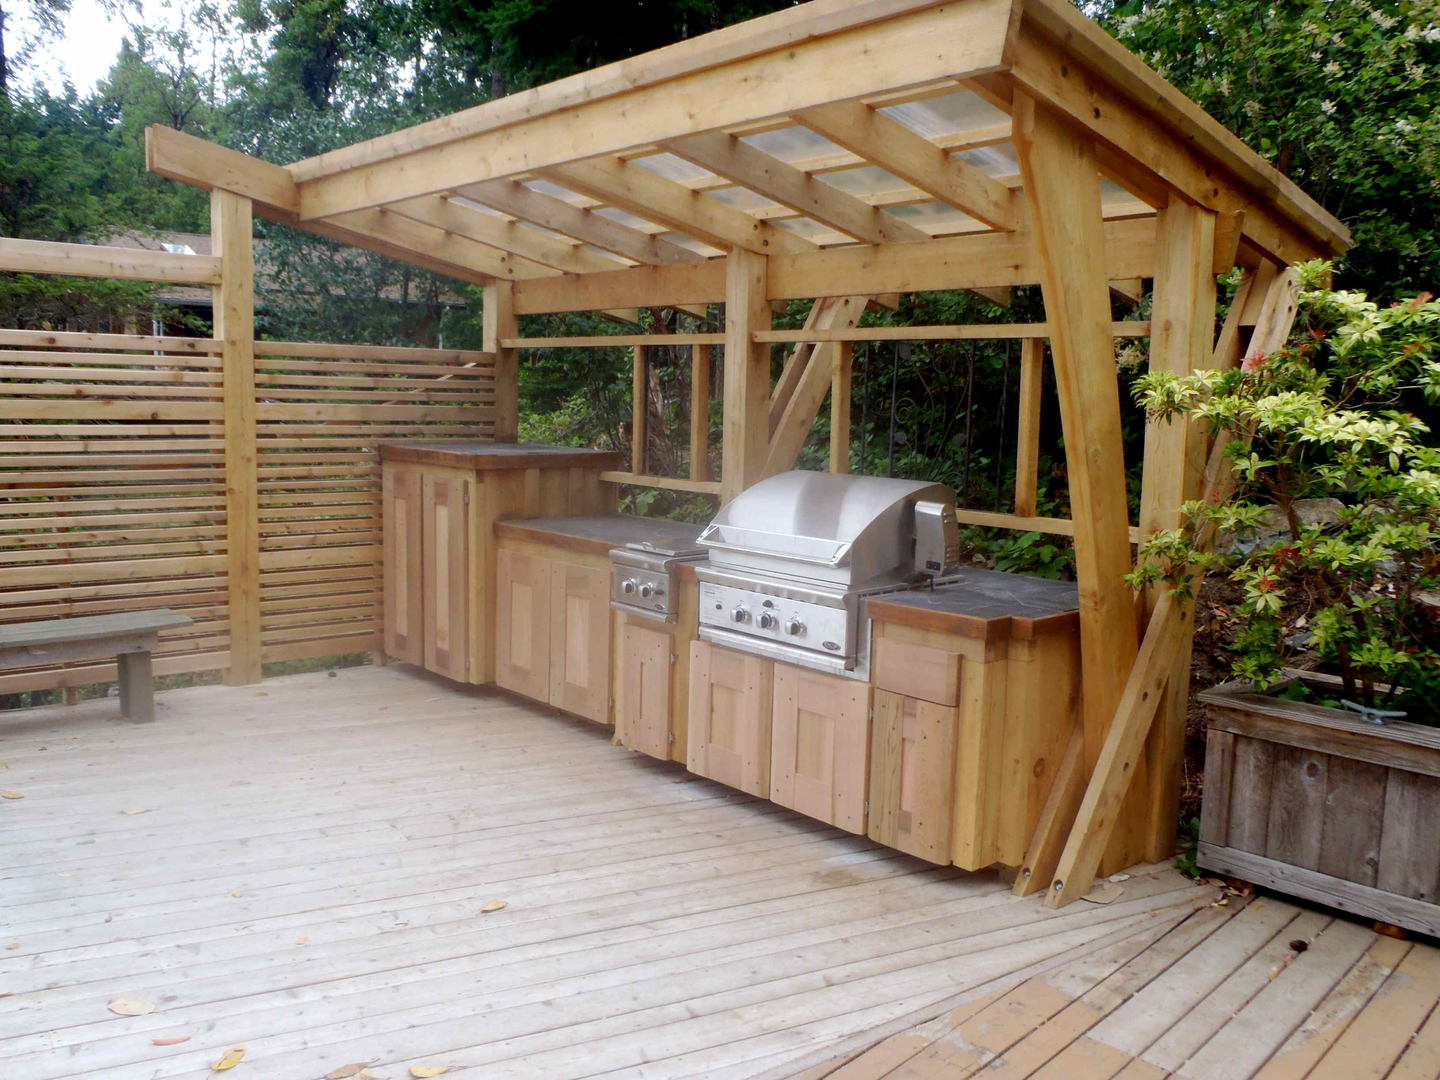 These DIY Outdoor Kitchen Plans Turn Your Backyard Into ... on Patio Kitchen Diy  id=55883